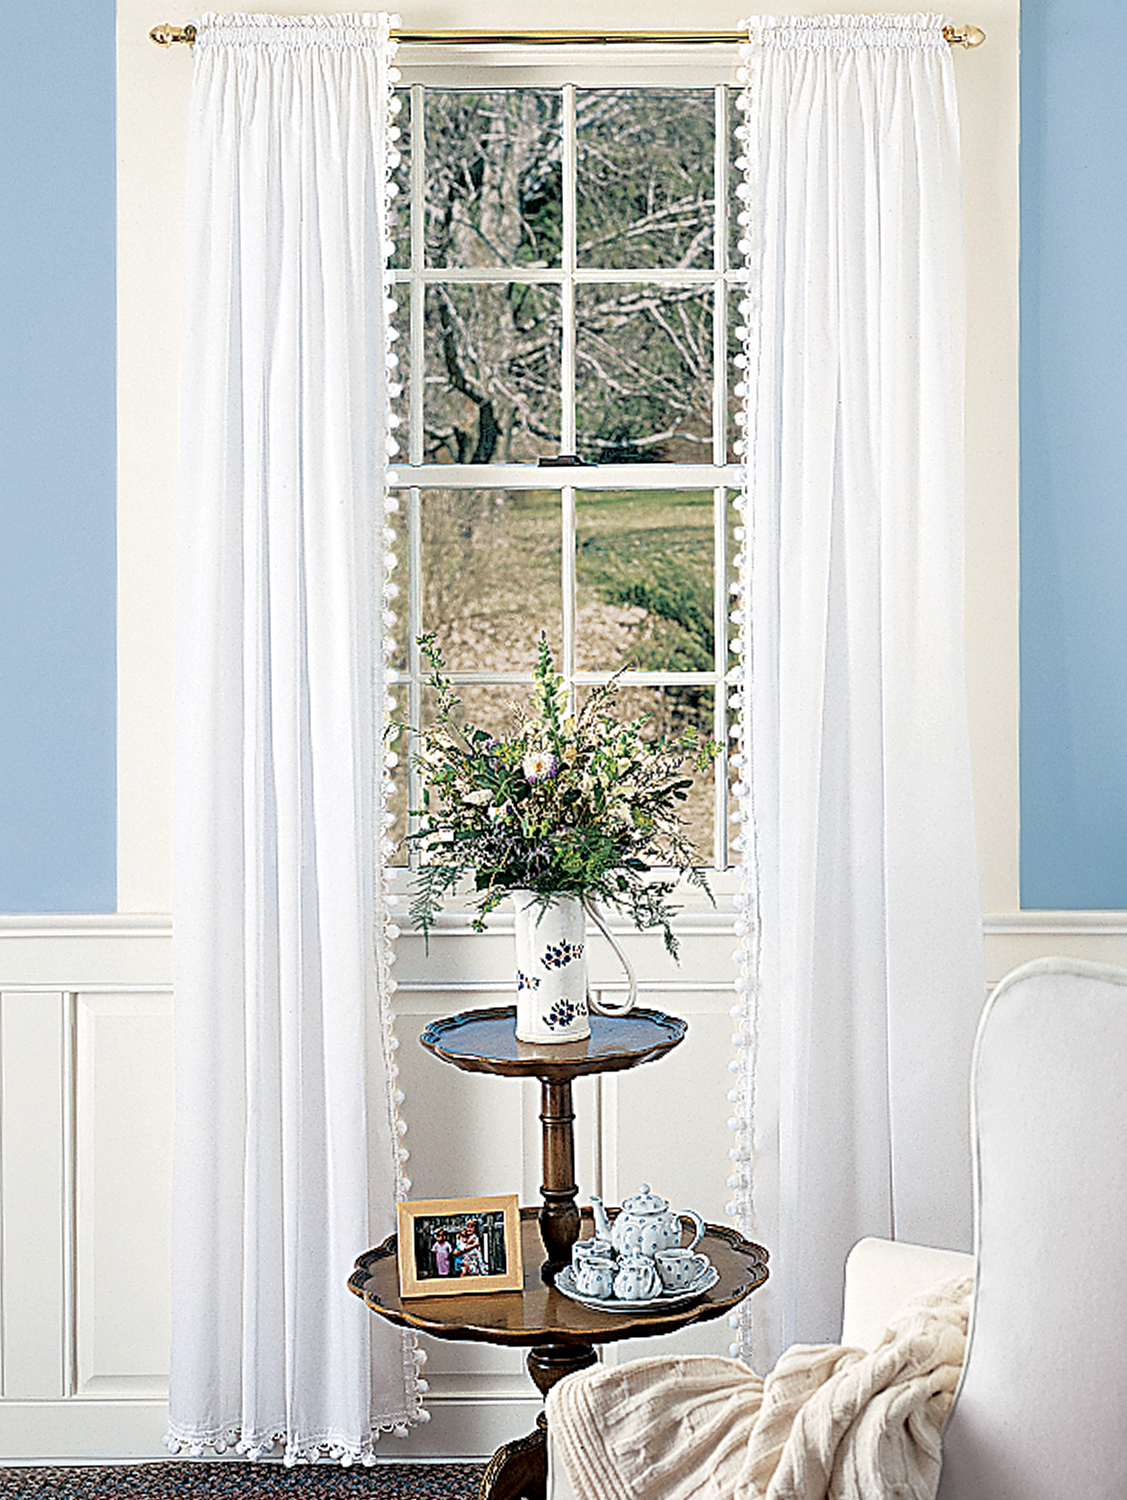 Classic Ball Fringe Rod Pocket Curtains And Tiers In 2019 With Serene Rod Pocket Kitchen Tier Sets (View 5 of 20)